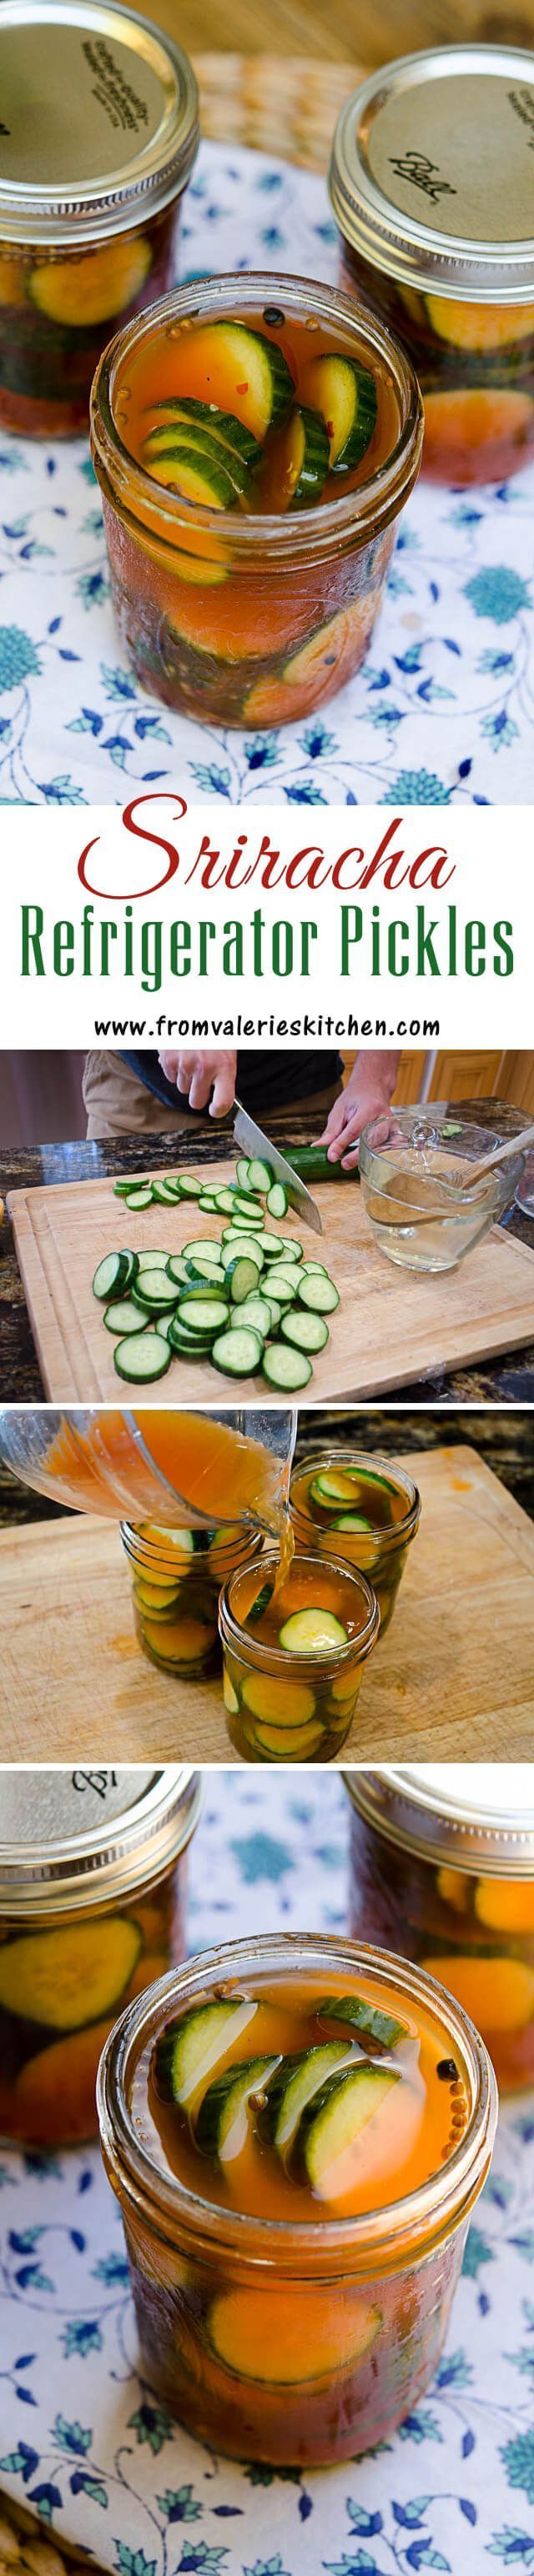 Refrigerator pickles are incredibly easy to make at home. Sriracha adds a little heat and lots of flavor! ~ http://www.fromvalerieskitchen.com